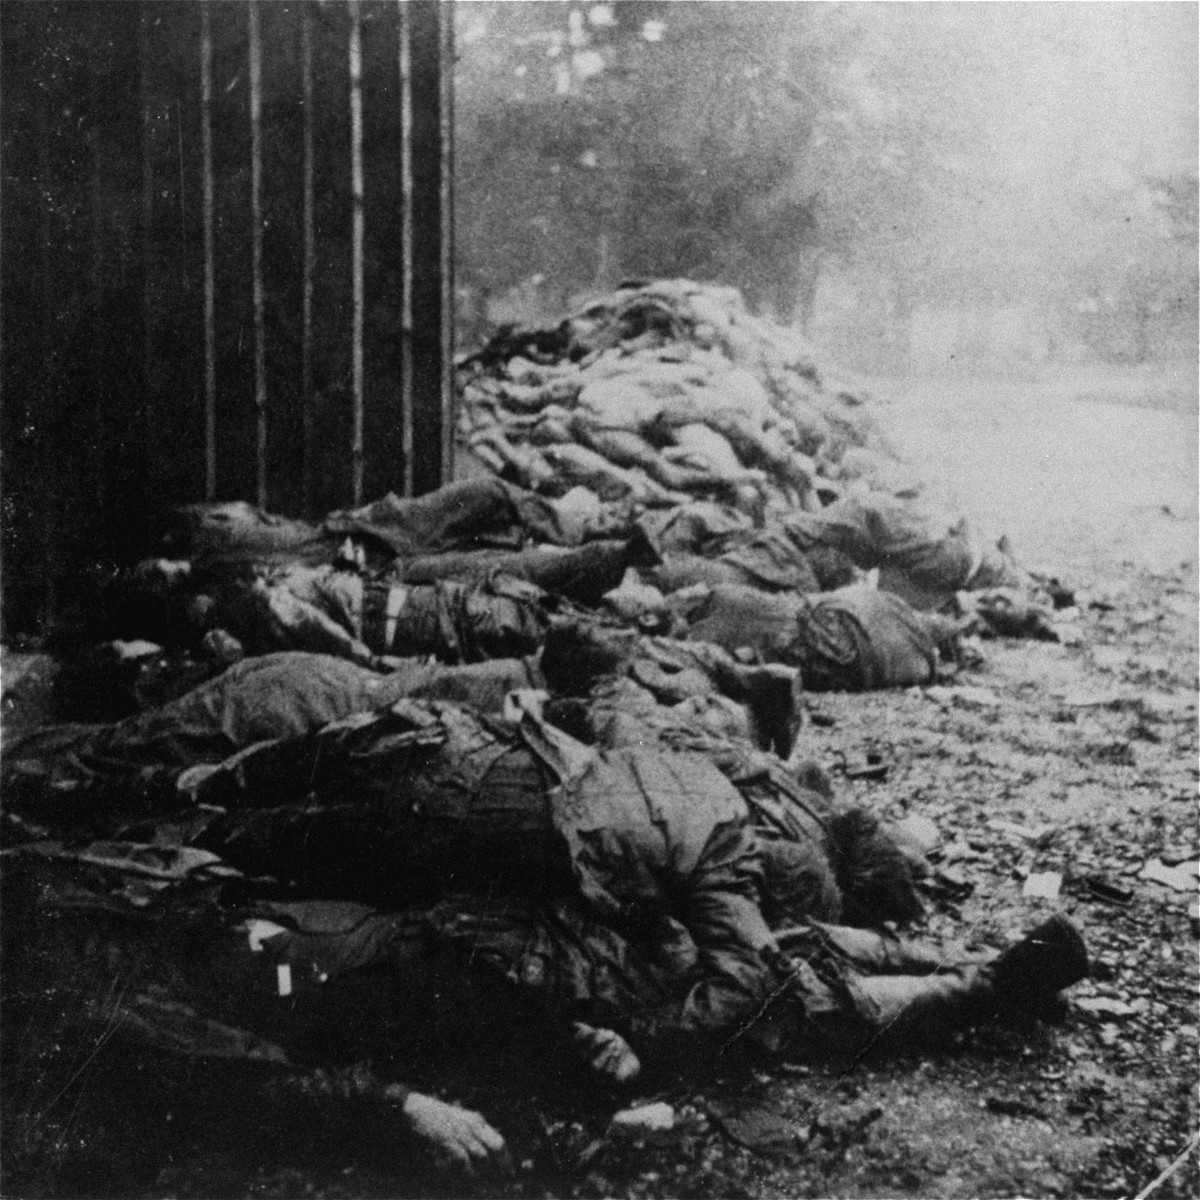 The bodies of summarily executed SS personnel lie in the foreground behind the crematorium, while behind them the corpses of prisoners are visible.